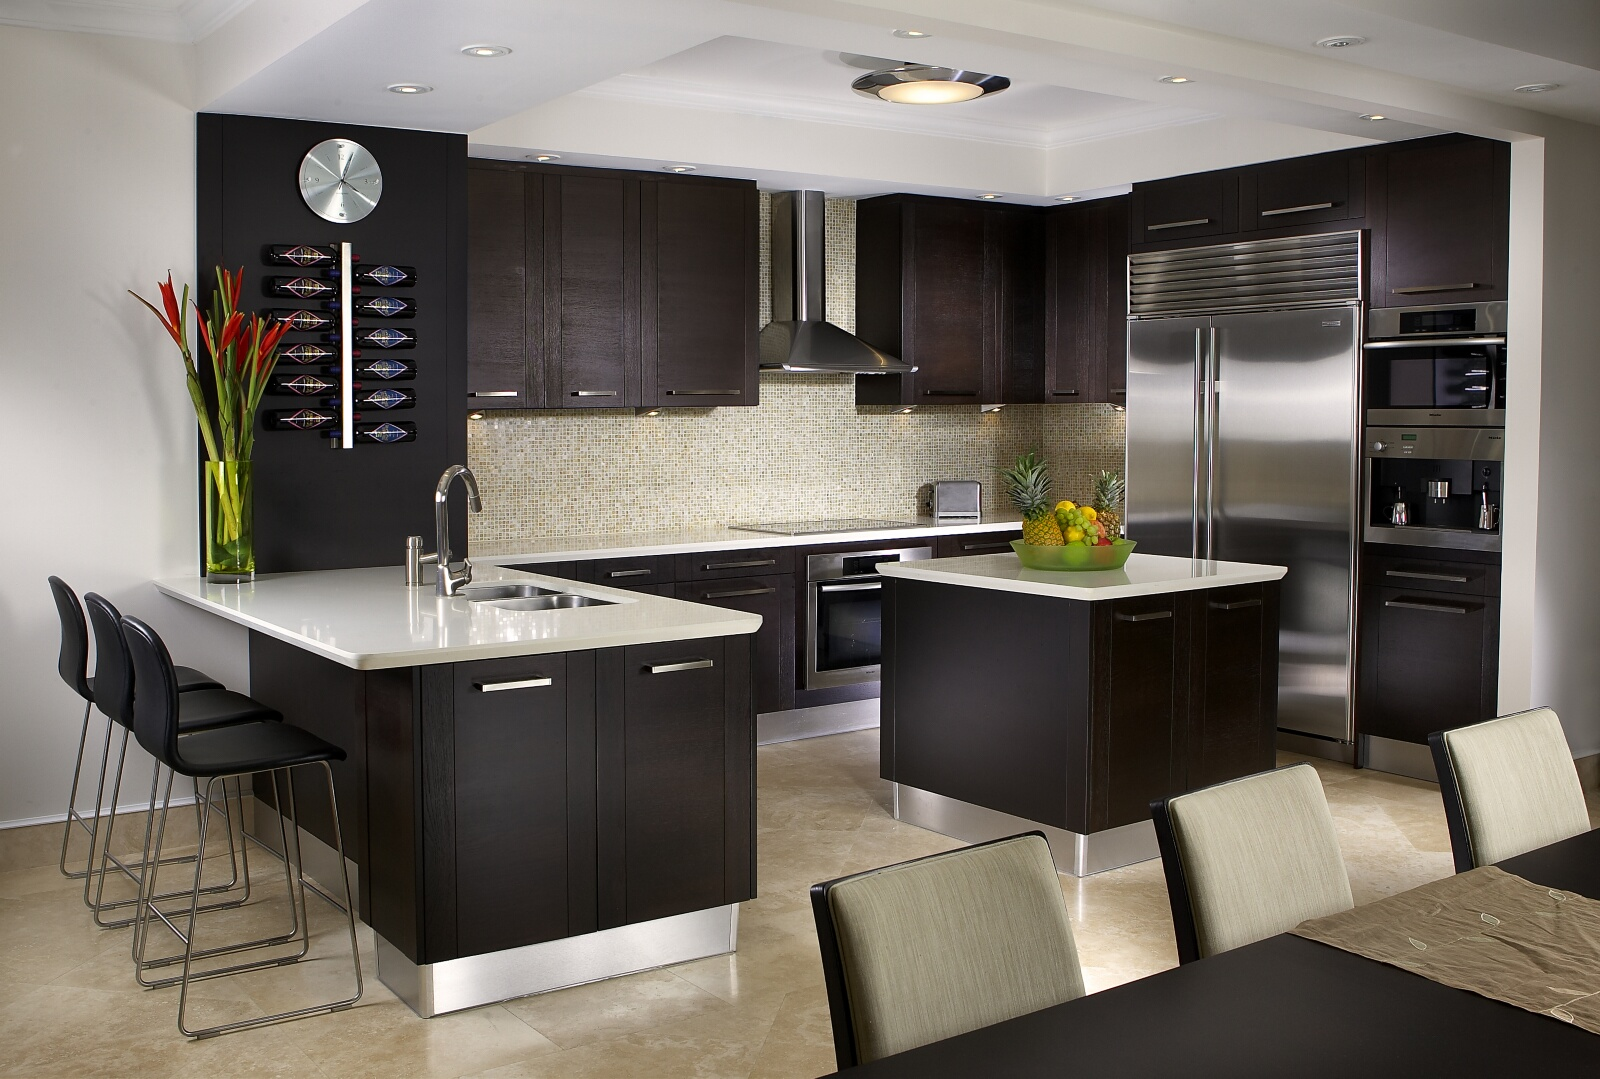 Kitchen interior design services miami florida for Interior designs kitchen